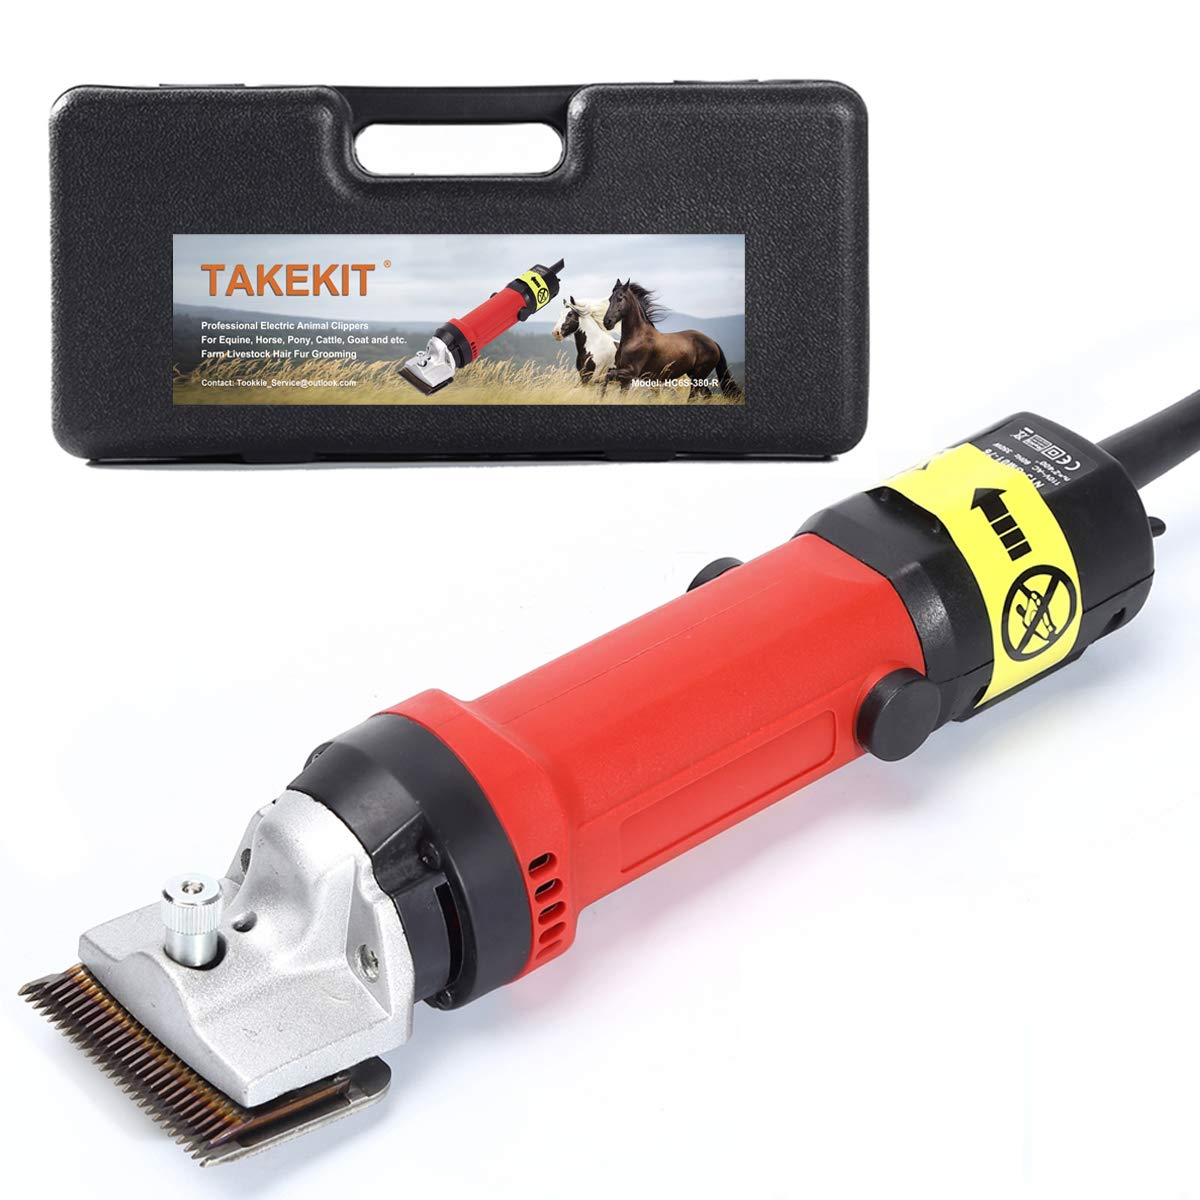 TAKEKIT Horse Clippers Professional Electric Animal Grooming Kit for Horse Equine Goat Pony Cattle and Large Thick Coat Dogs, 6 Speeds Heavy Duty Farm Livestock Haircut Trimmer, 380W by TAKEKIT